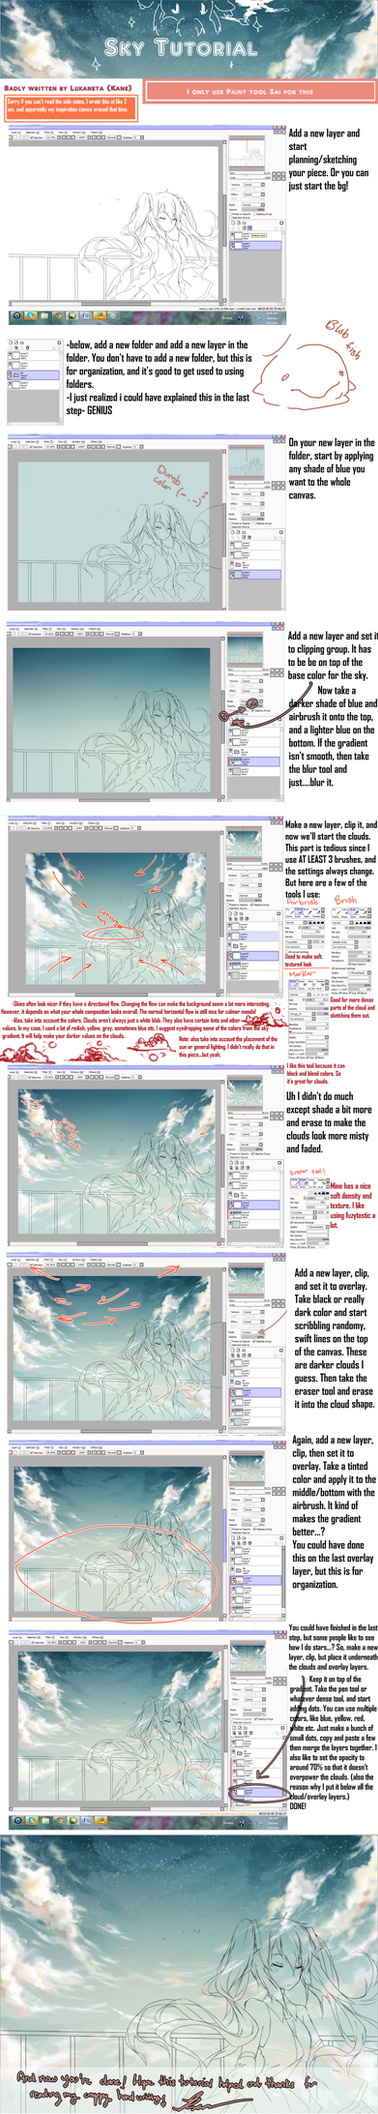 Sky Tutorial I think by Kanekiru